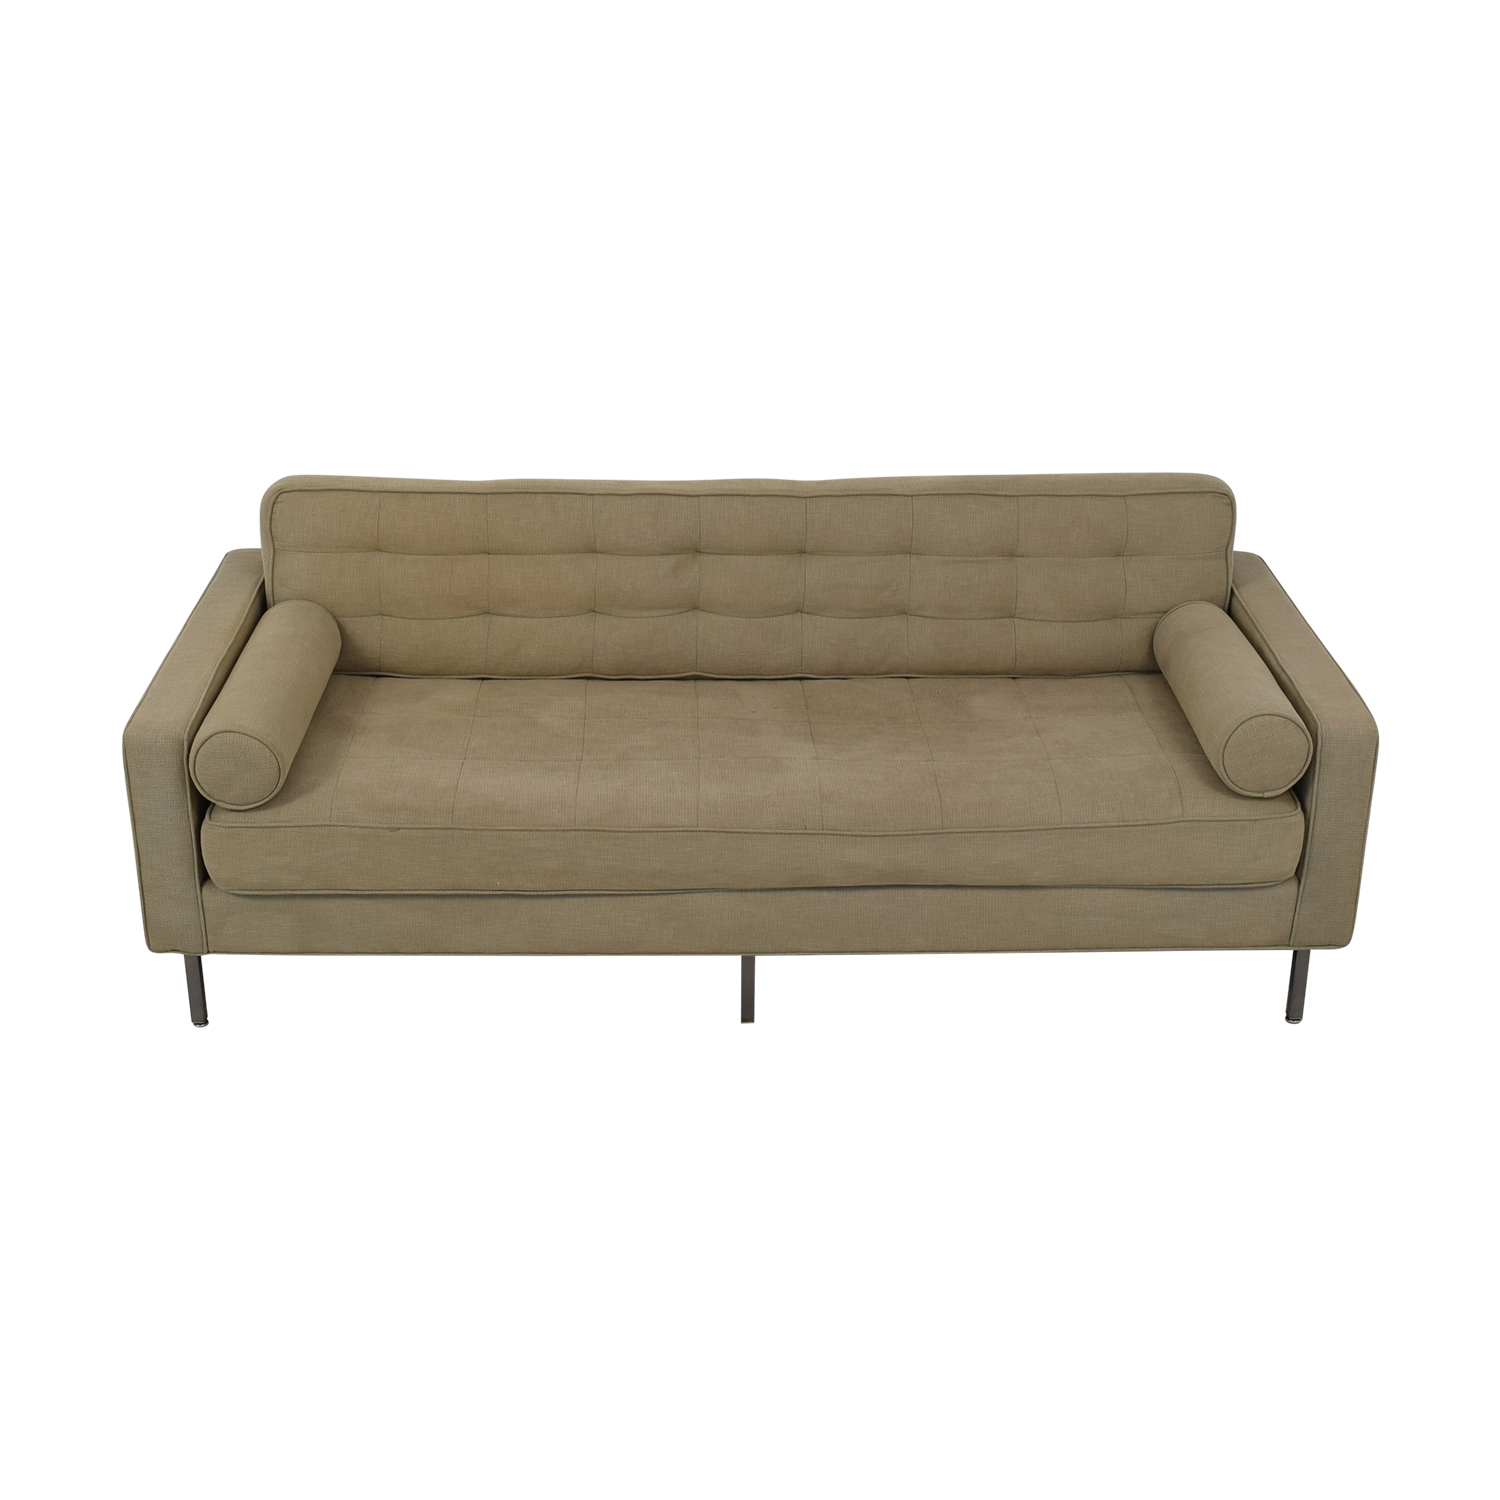 Custom Tufted Tuxedo Sofa discount